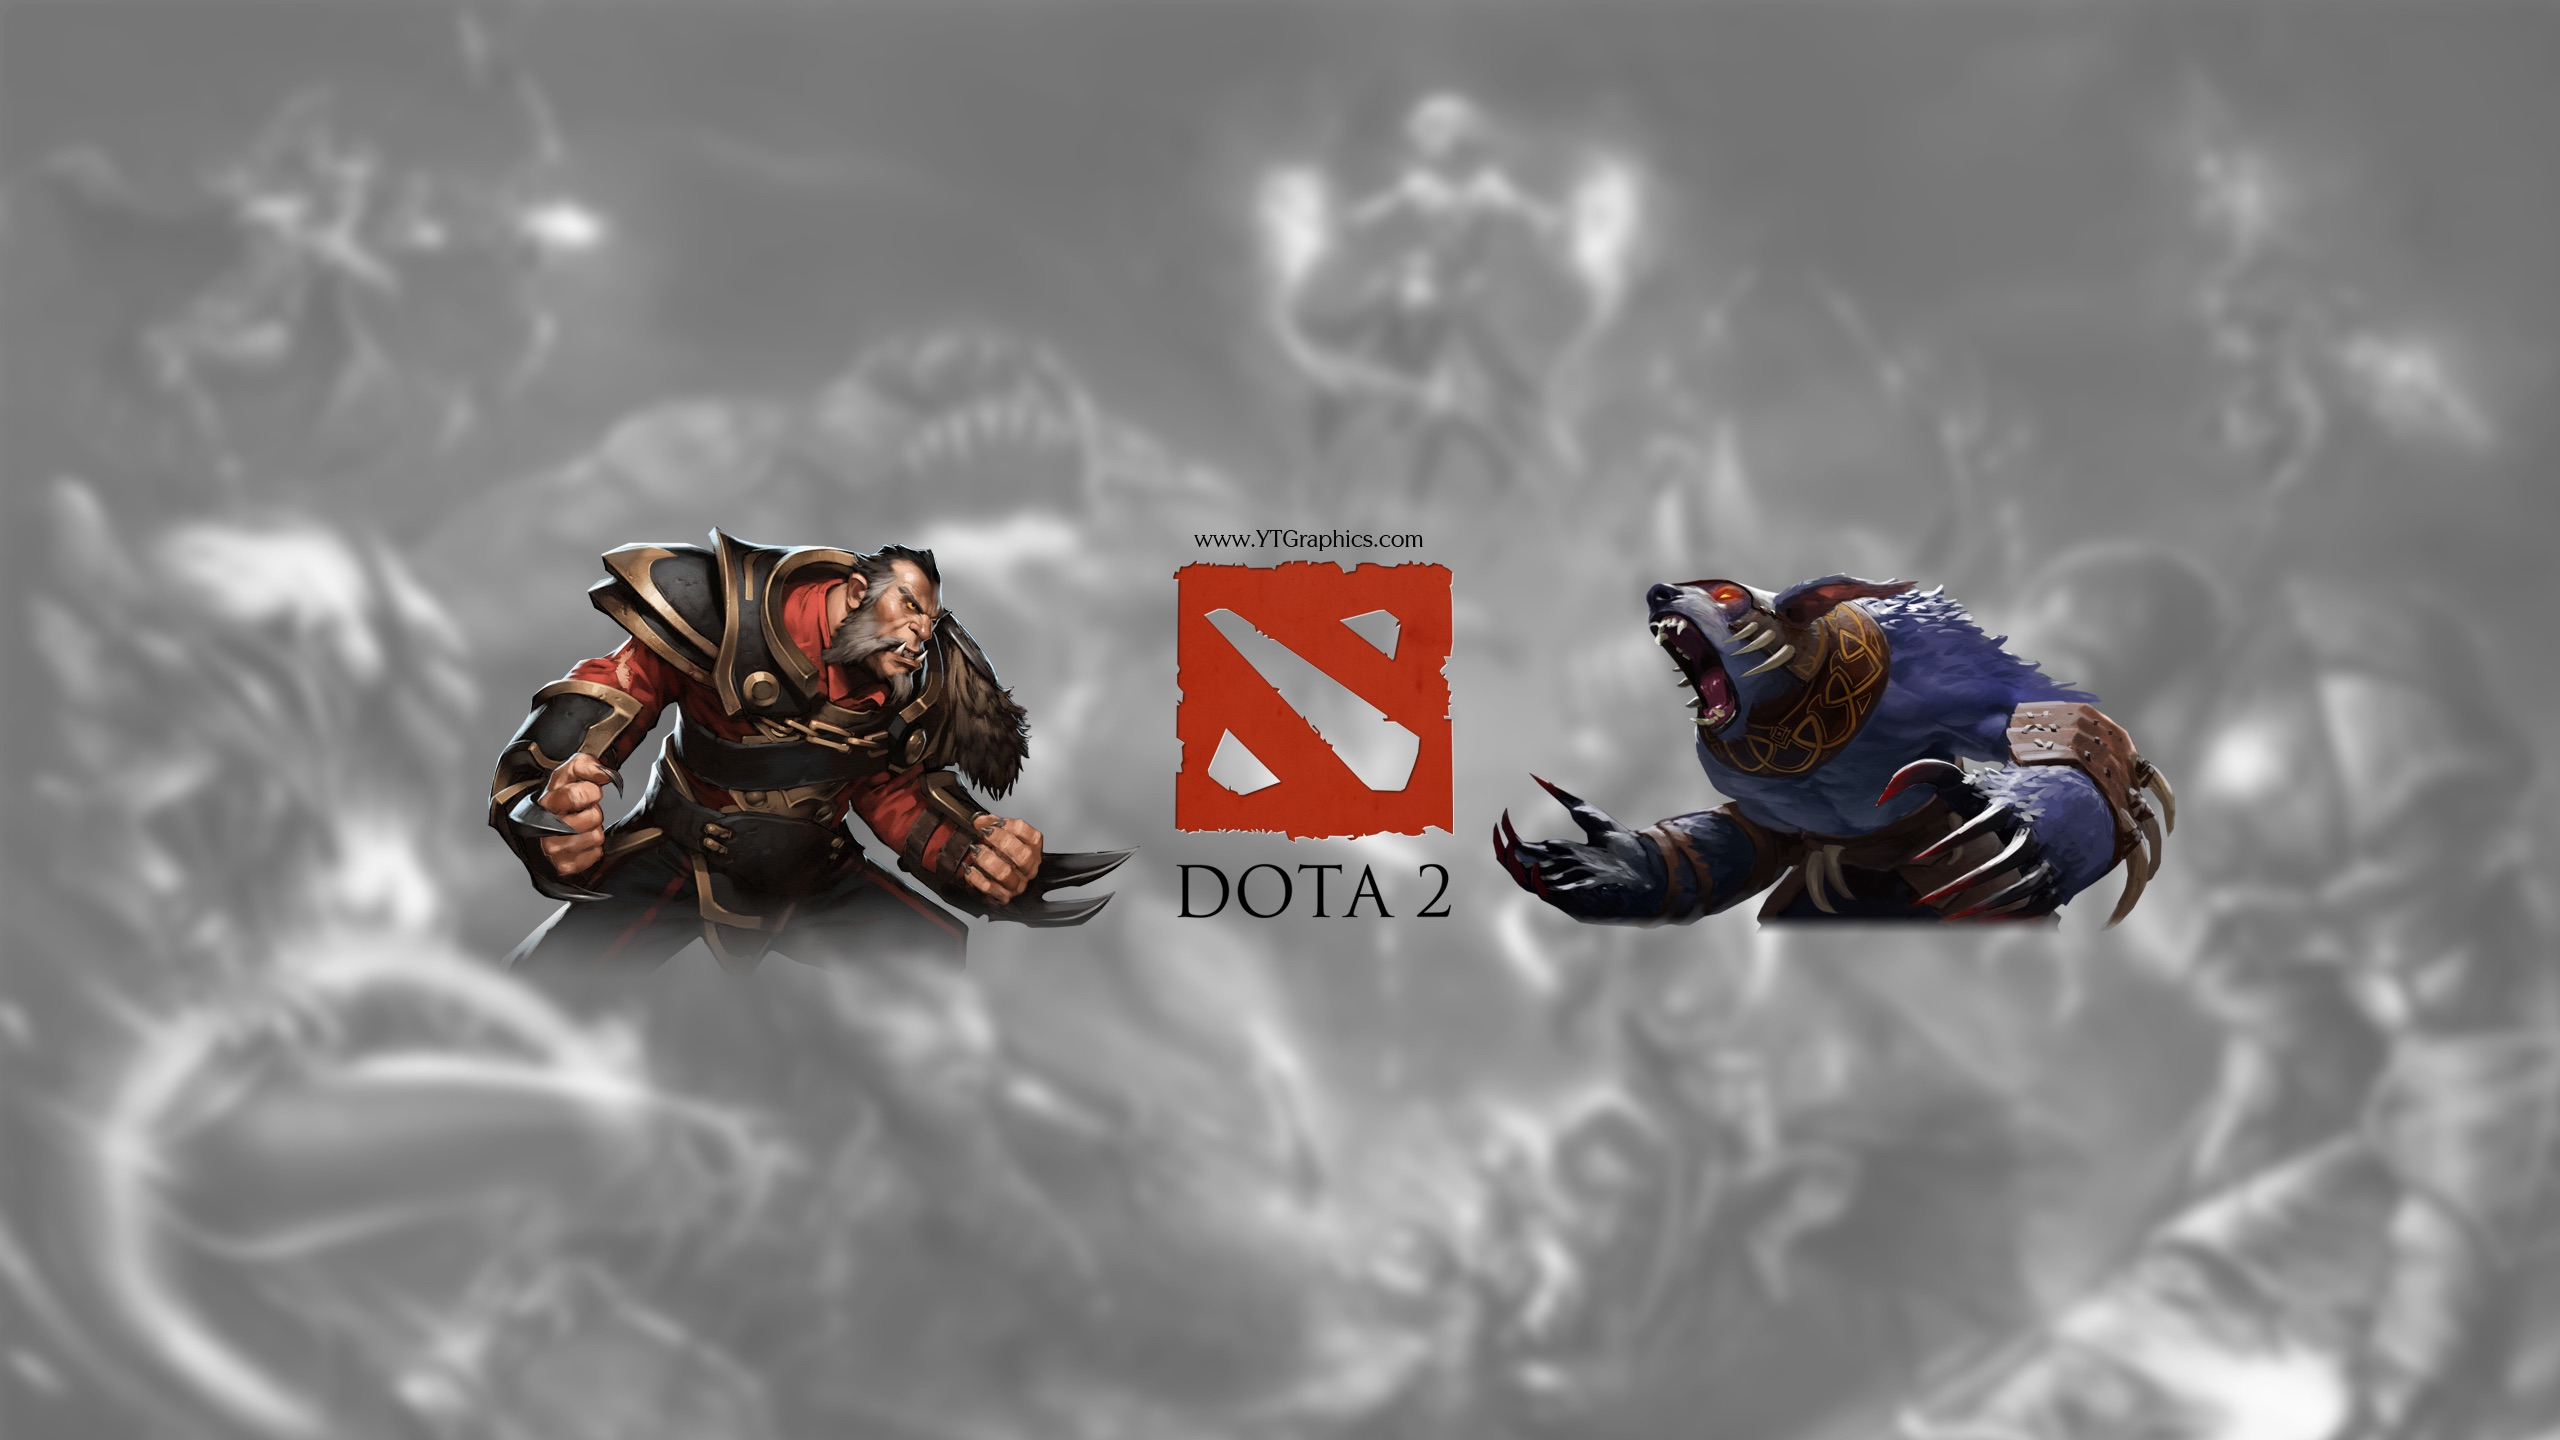 Dota 2 Youtube Channel Art Banners